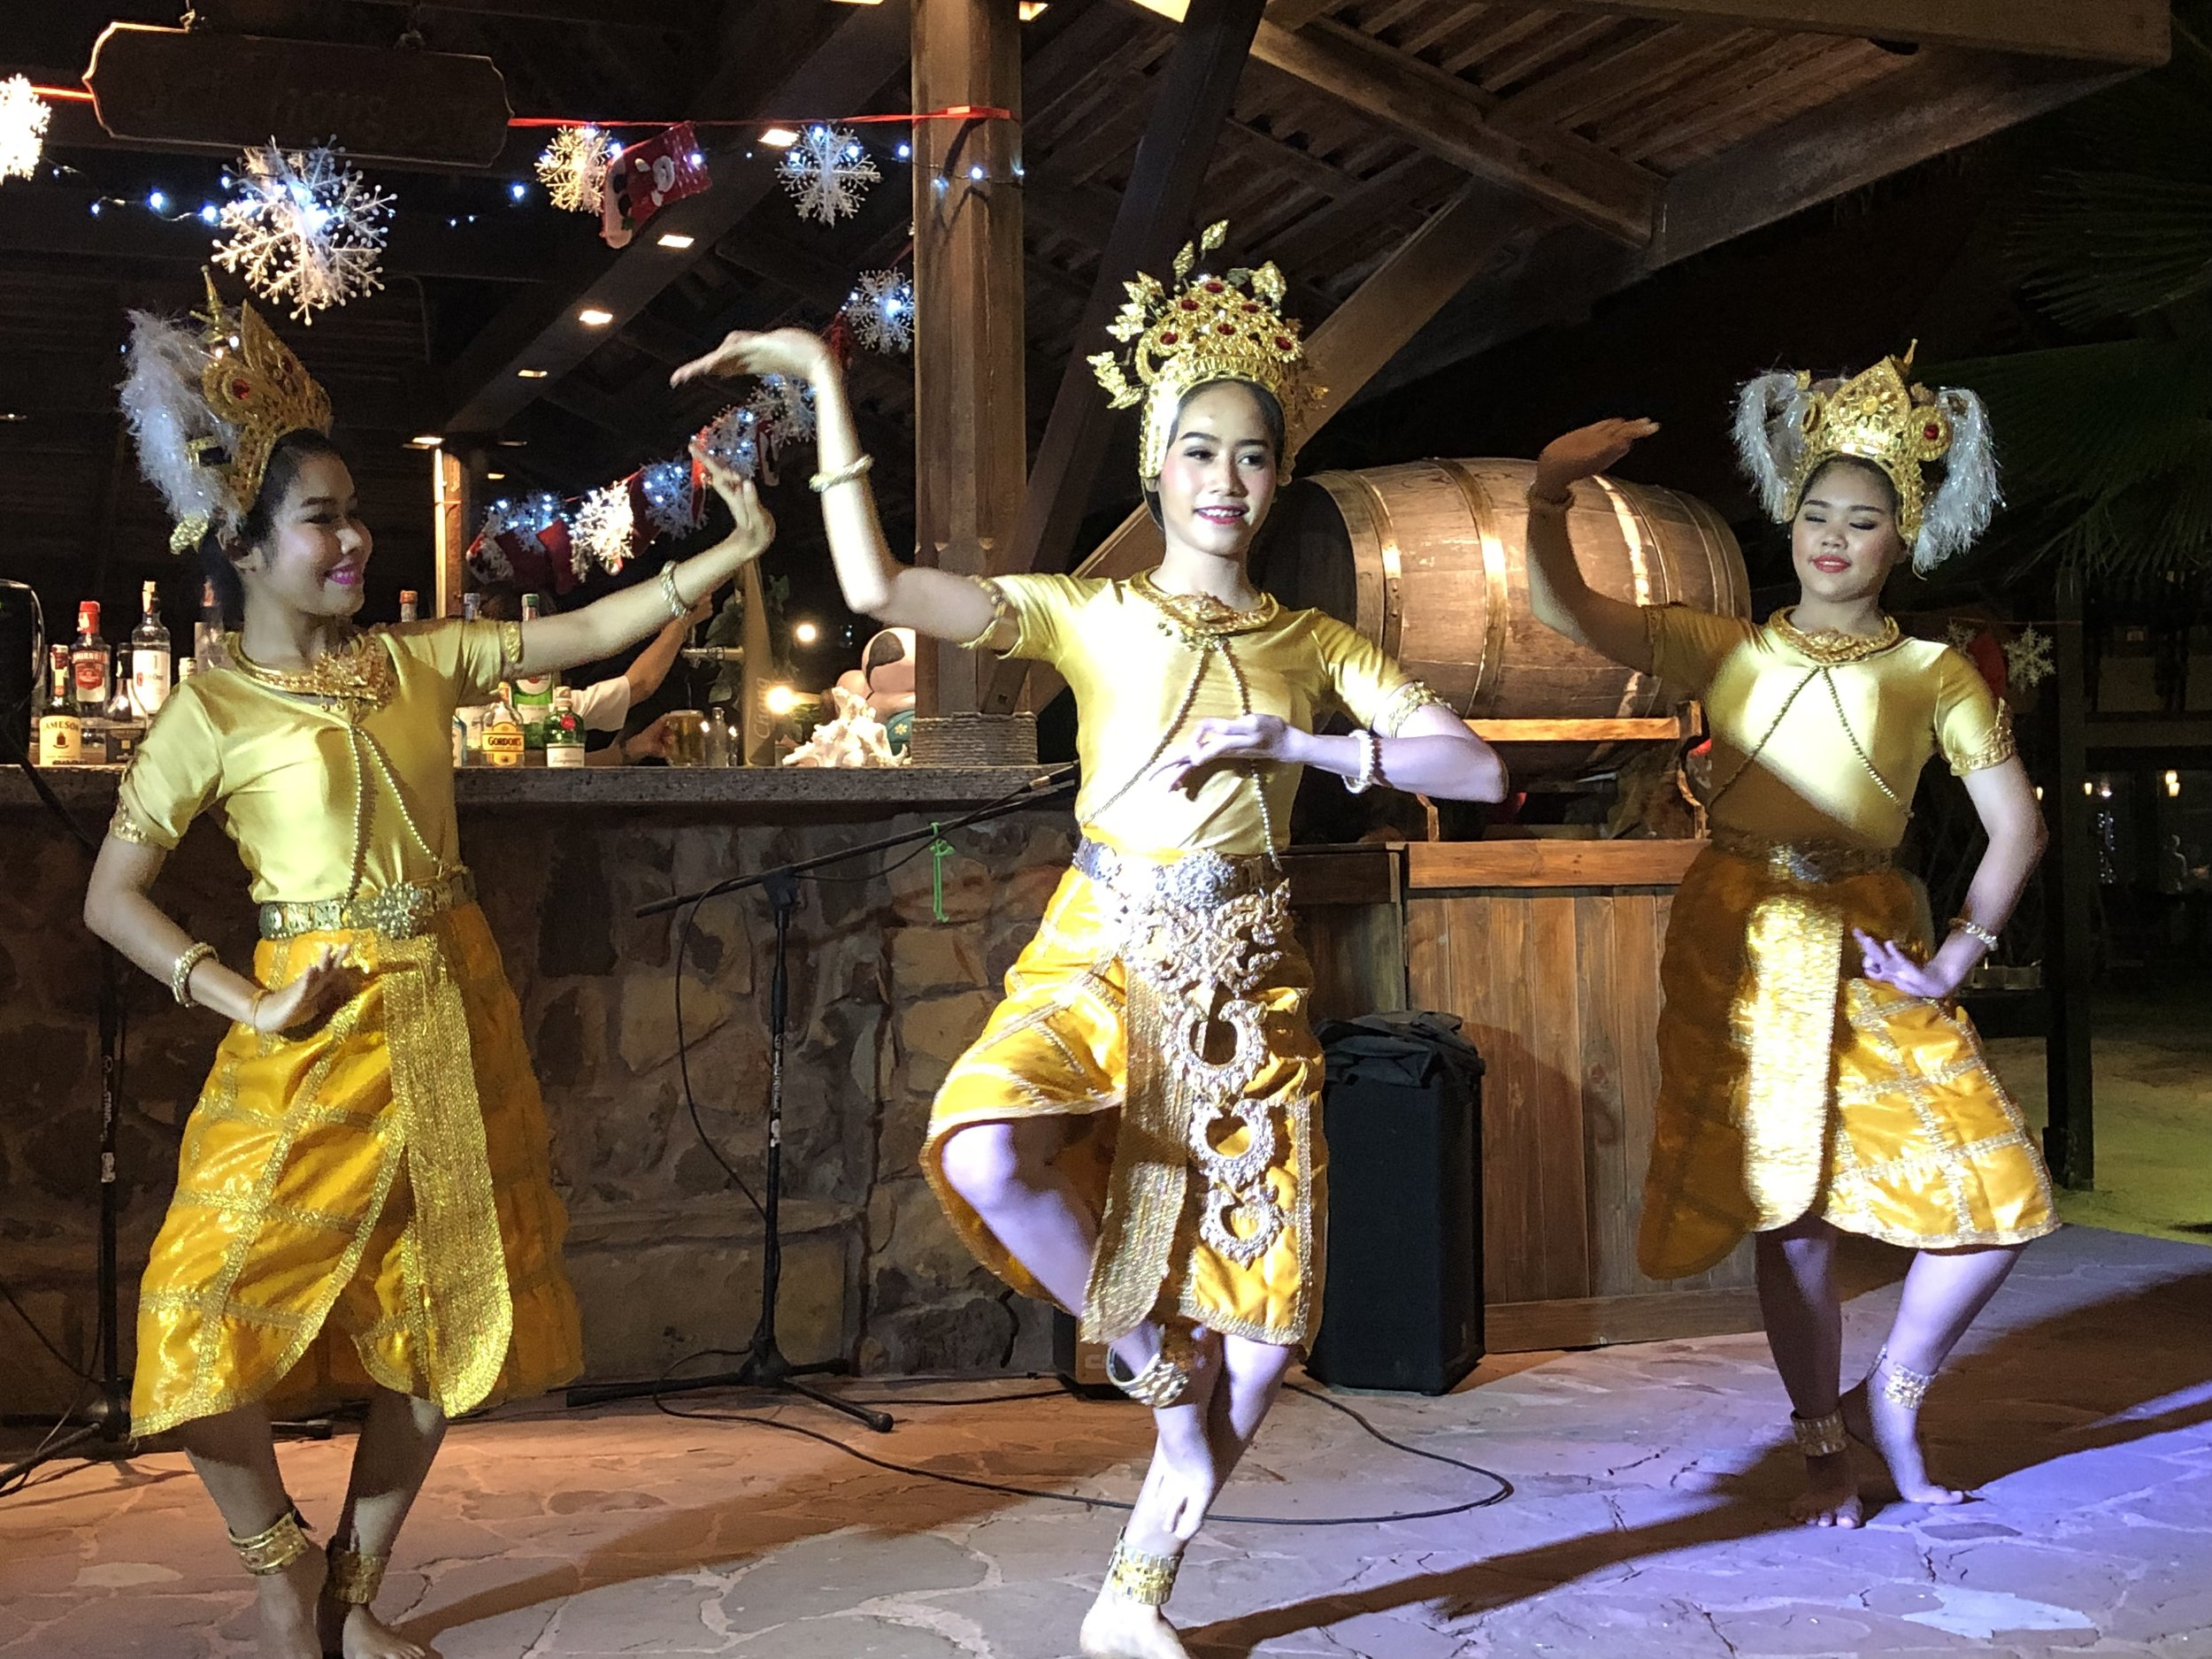 Ramayana depicted through classical Thai dance (Image: Sumita Sarma)